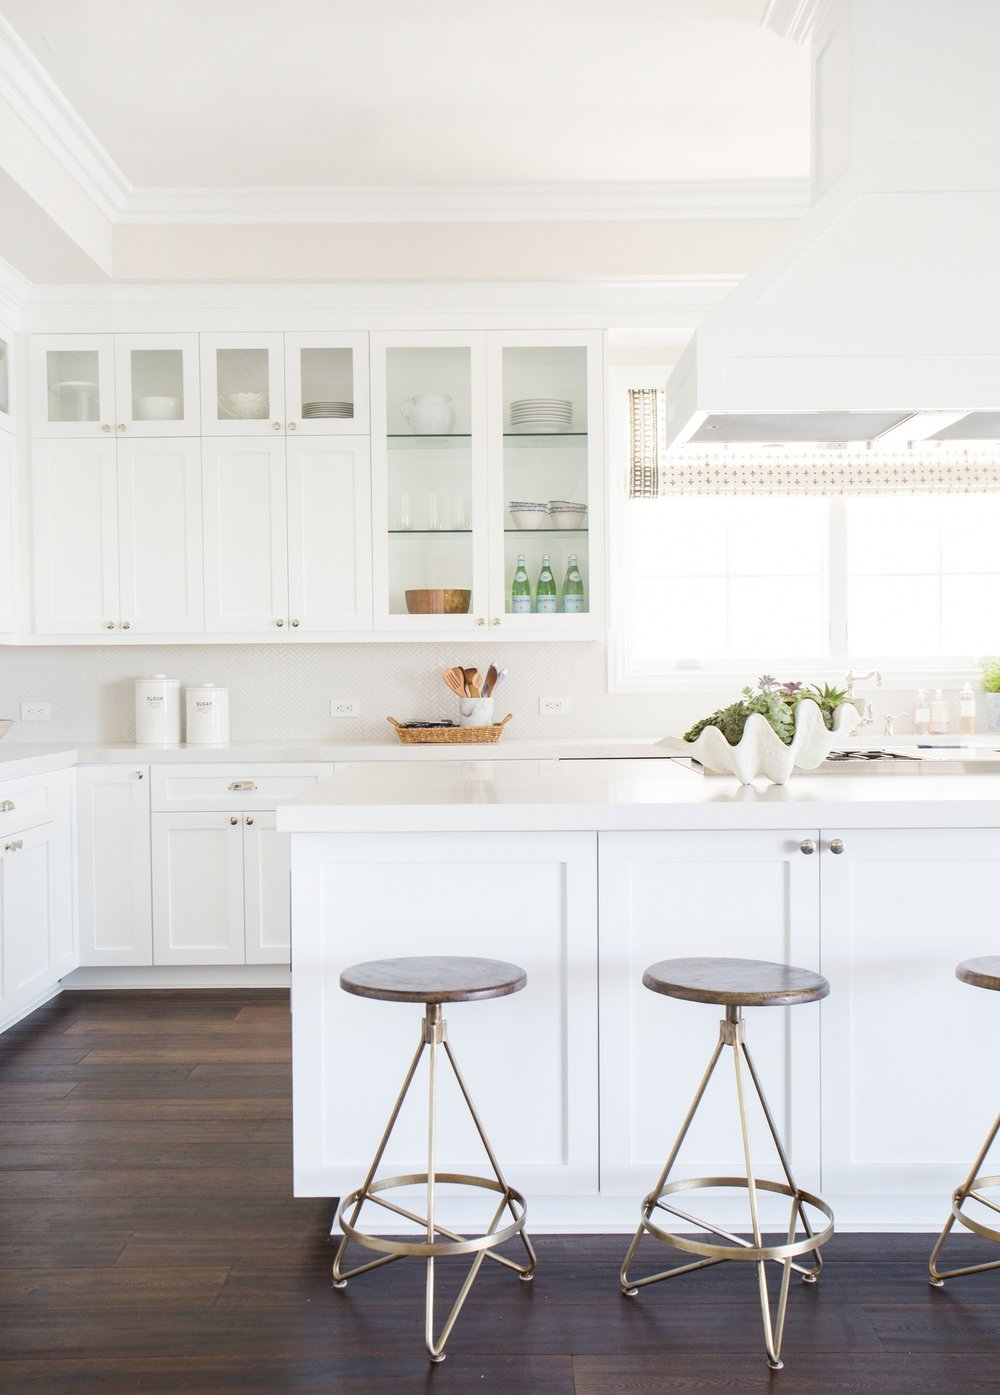 White+kitchen+with+herringbone+backsplash+__+Studio+McGee.jpg